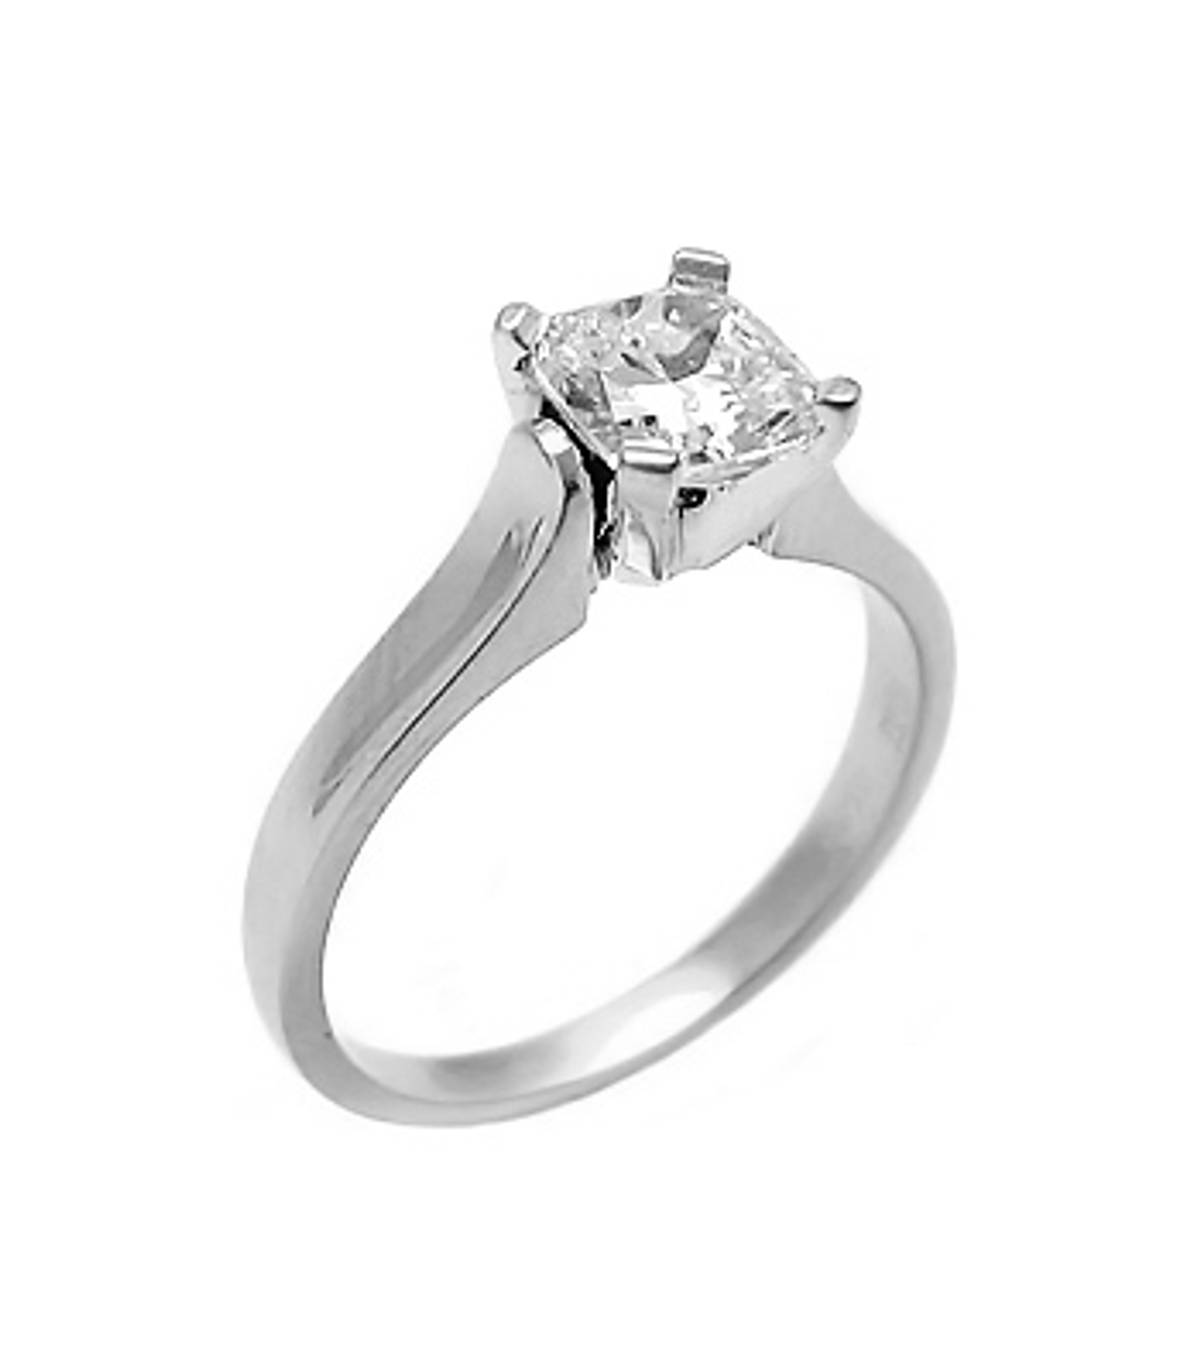 Irish made 1.04carat cushion shape diamond ring set in 18ct white gold